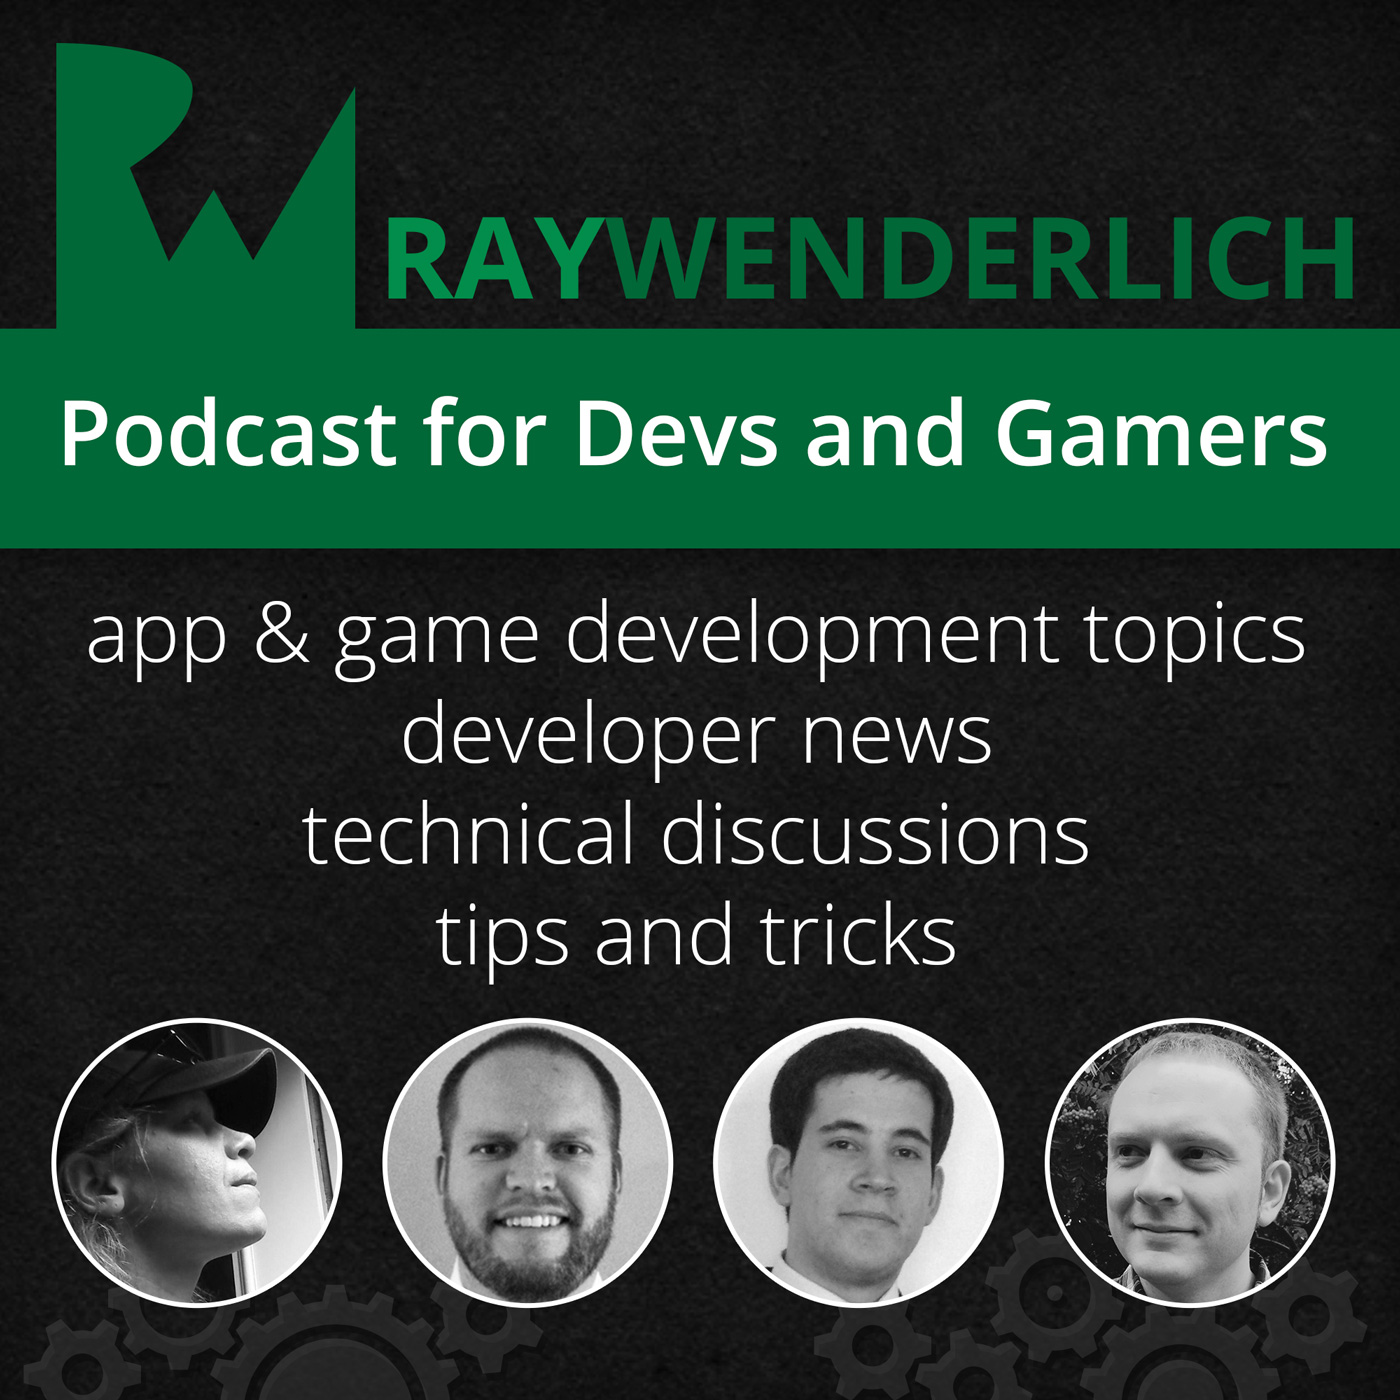 The raywenderlich.com Podcast: For App Developers and Gamers